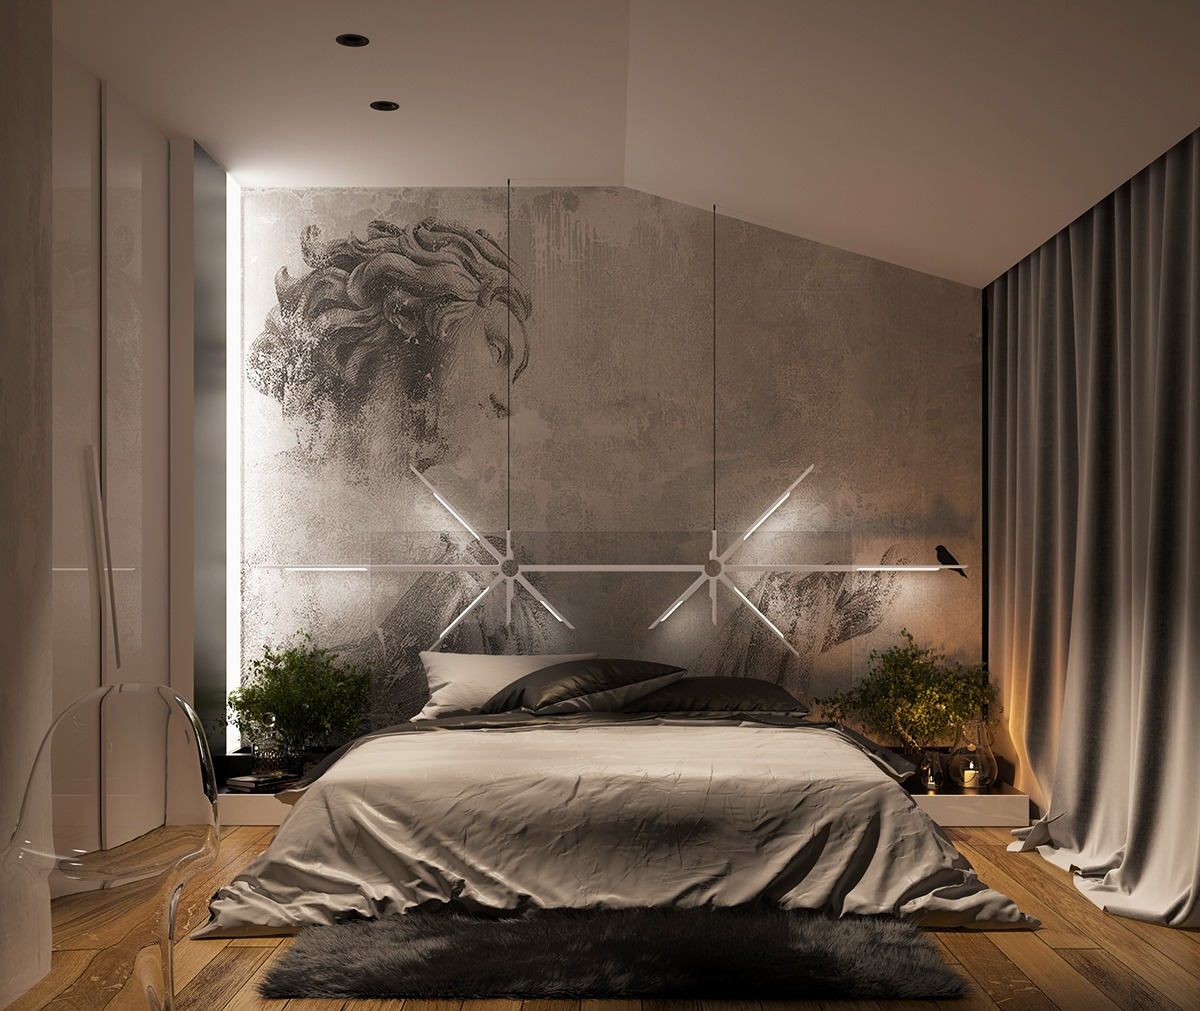 Design Wall Concrete Wall Designs 30 Striking Bedrooms That Use